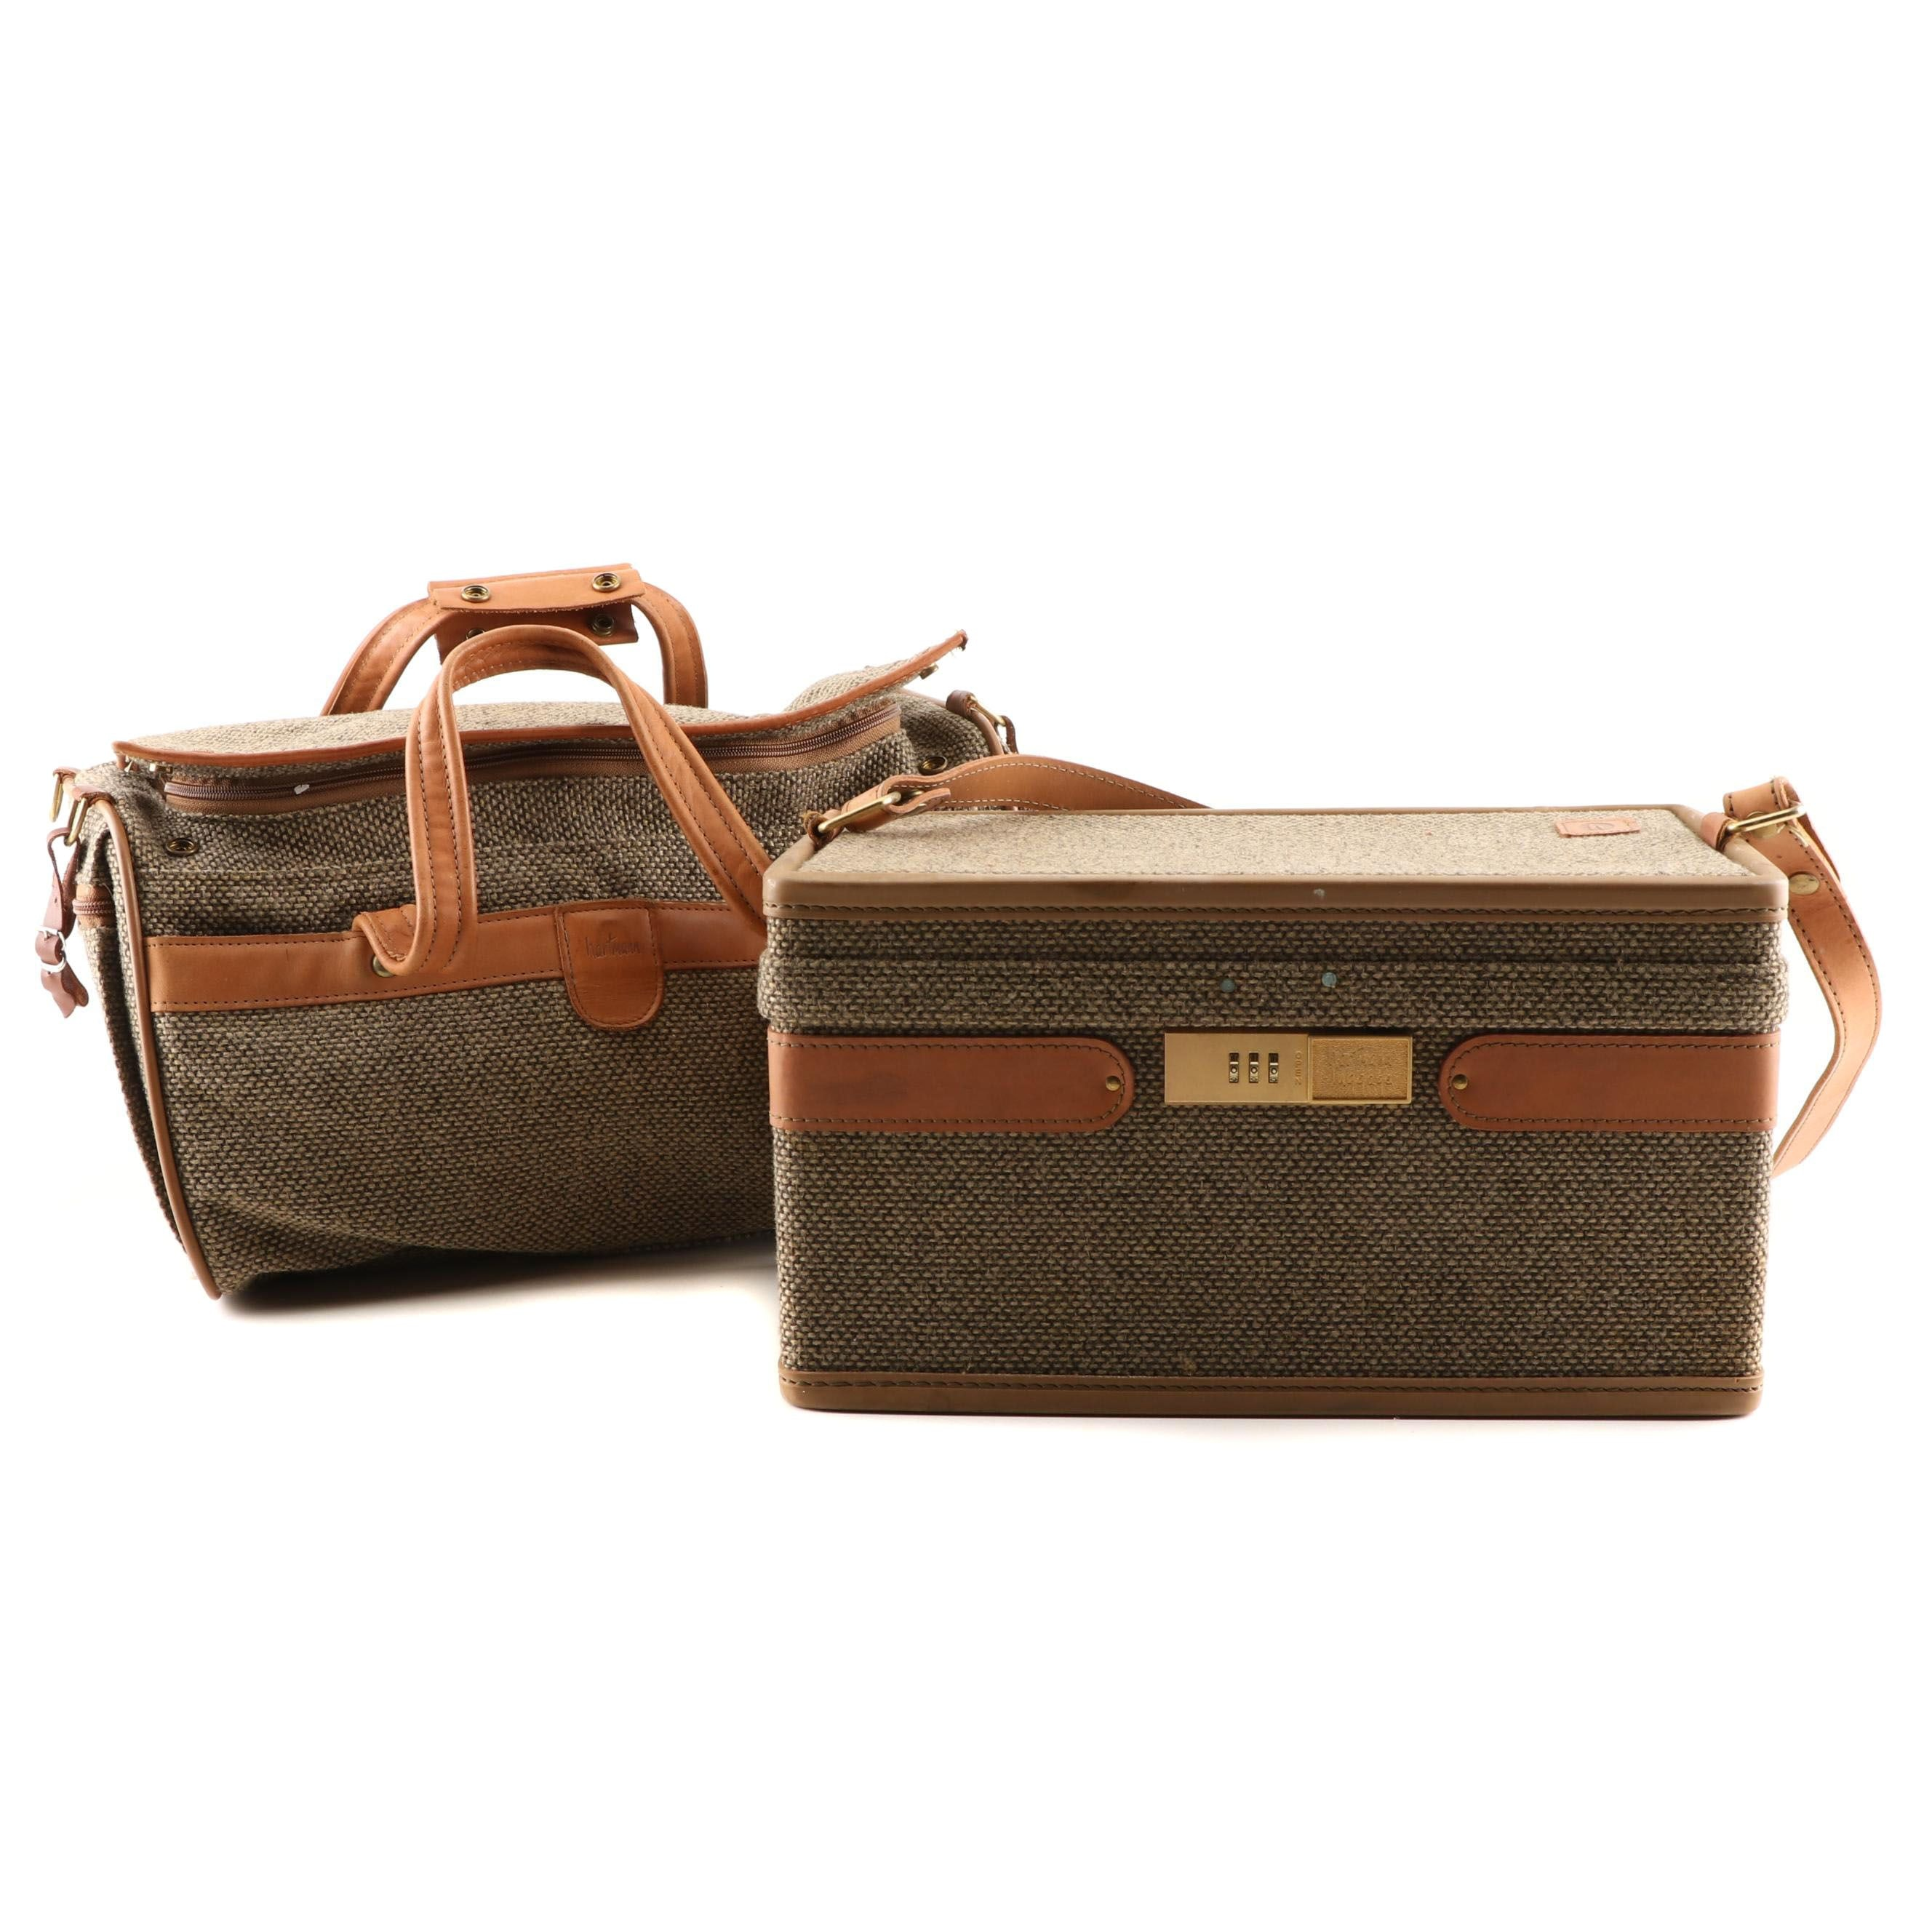 Hartmann Tweed and Leather Train Case and Duffel Bag, 1980s Vintage